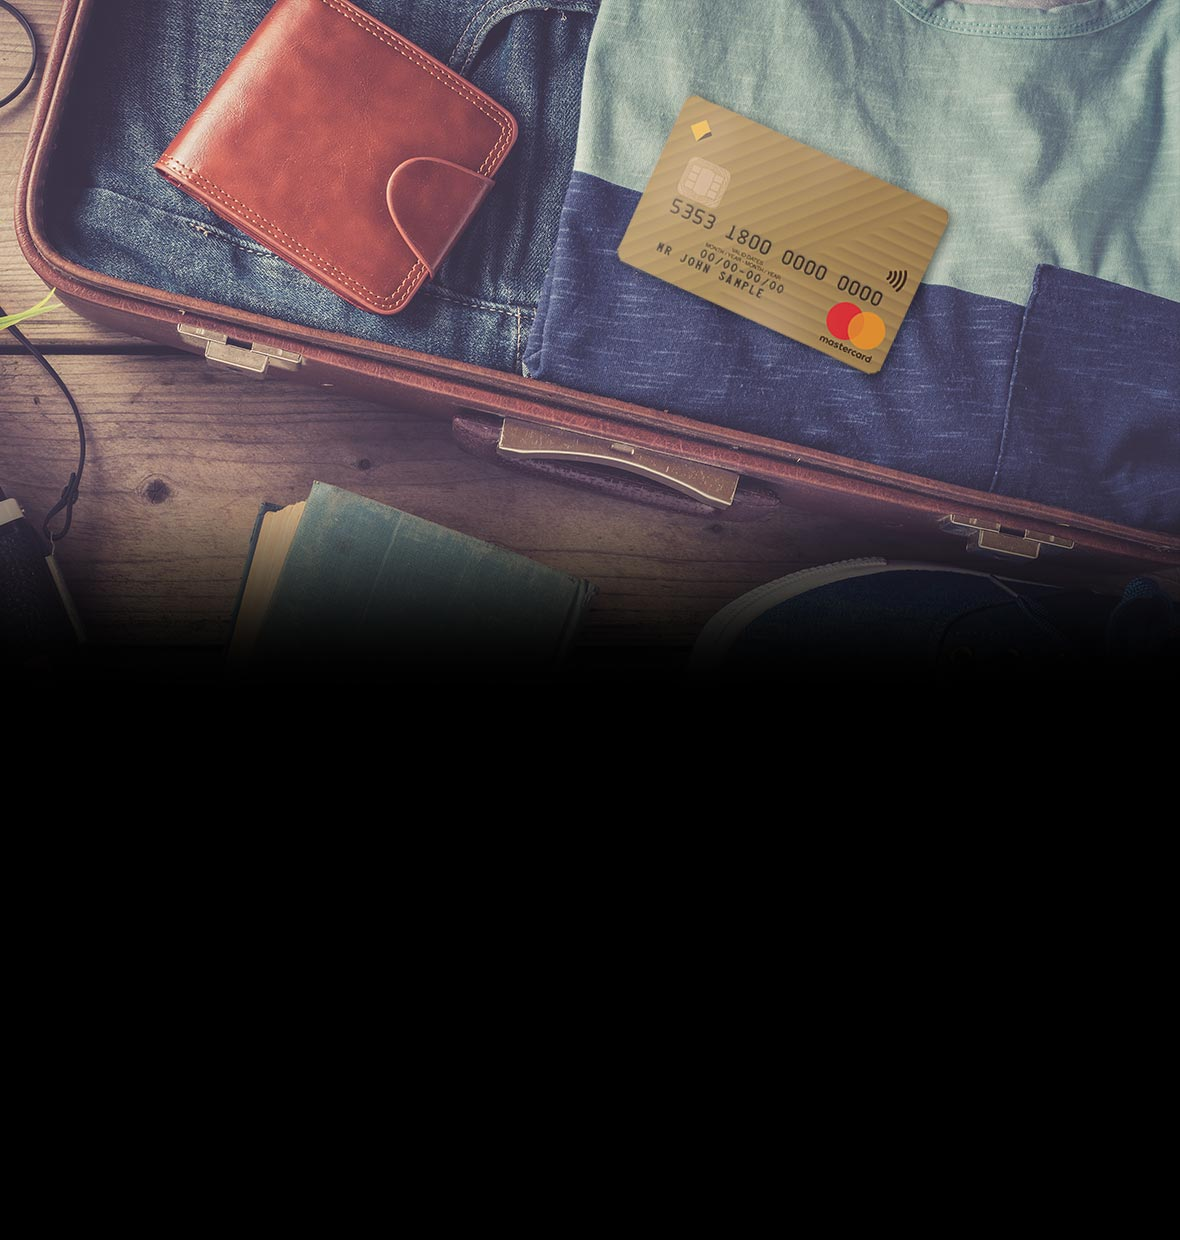 Travel Card Commbank: Low Fee Gold Credit Card